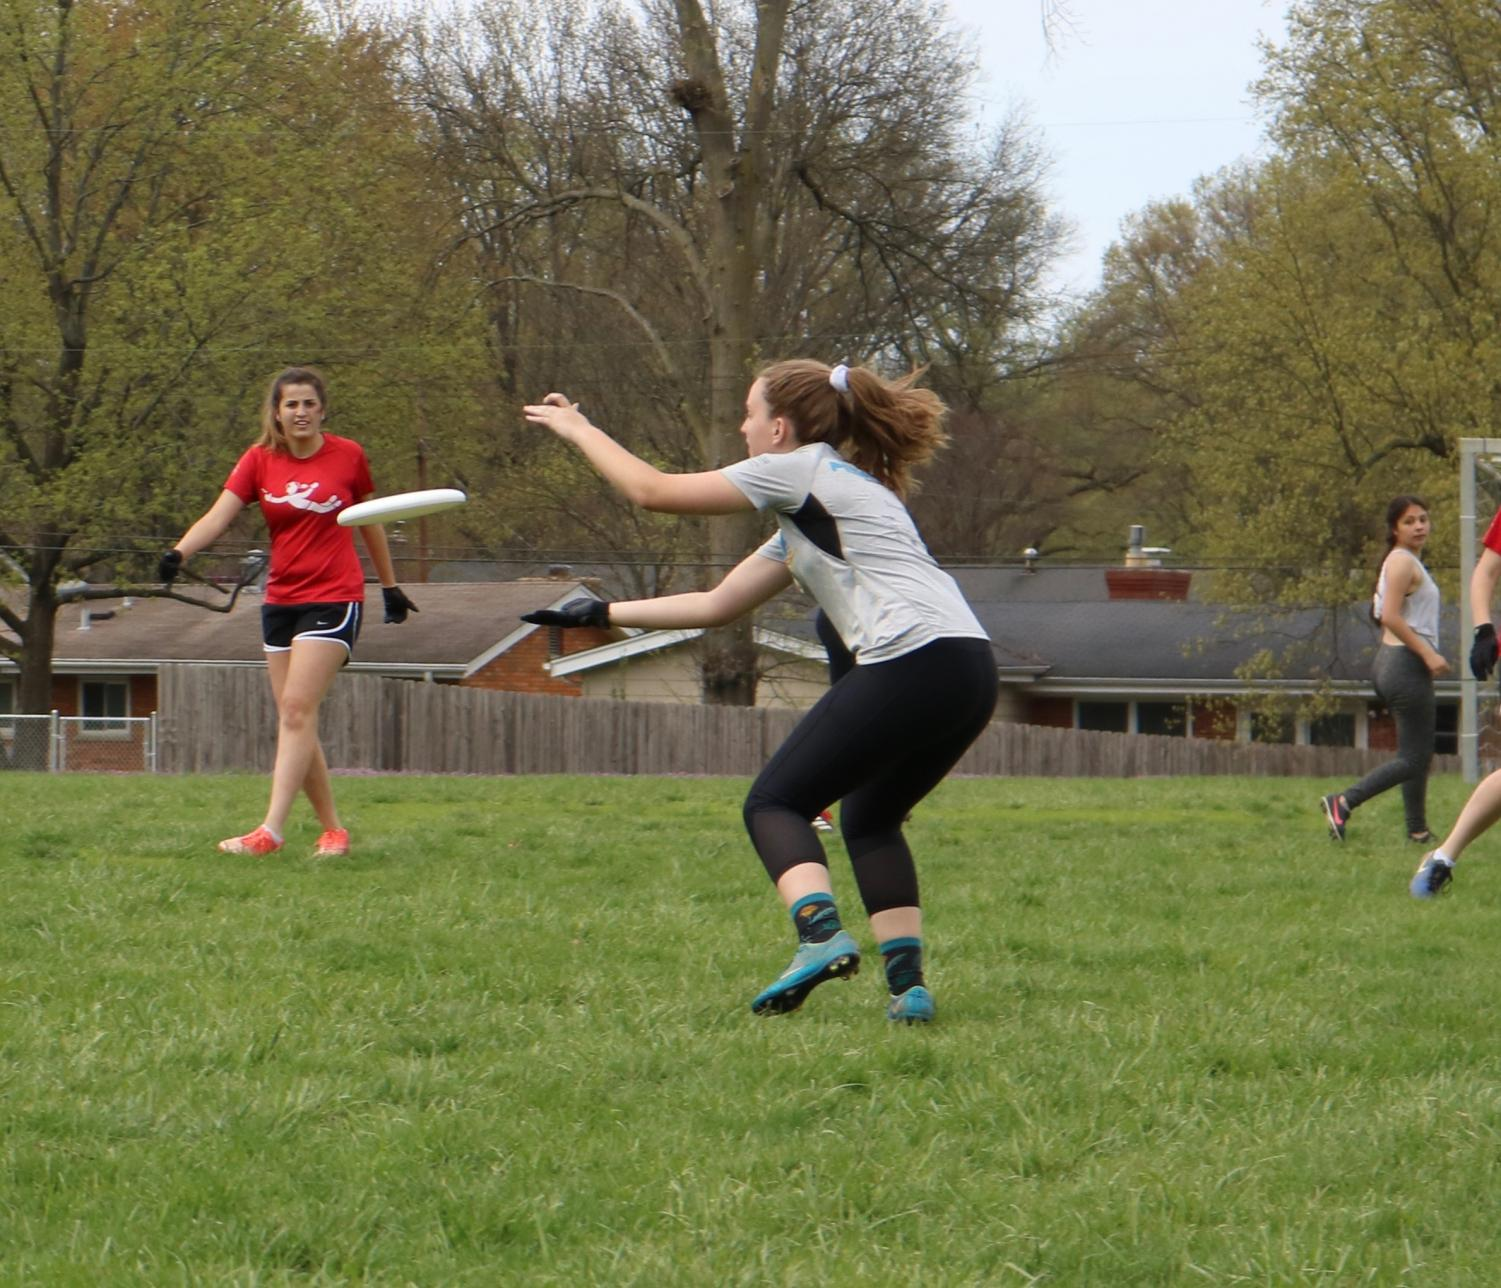 Eileen+Finley%2C+junior%2C+runs+to+catch+the+frisbee+during+a+scrimmage.+